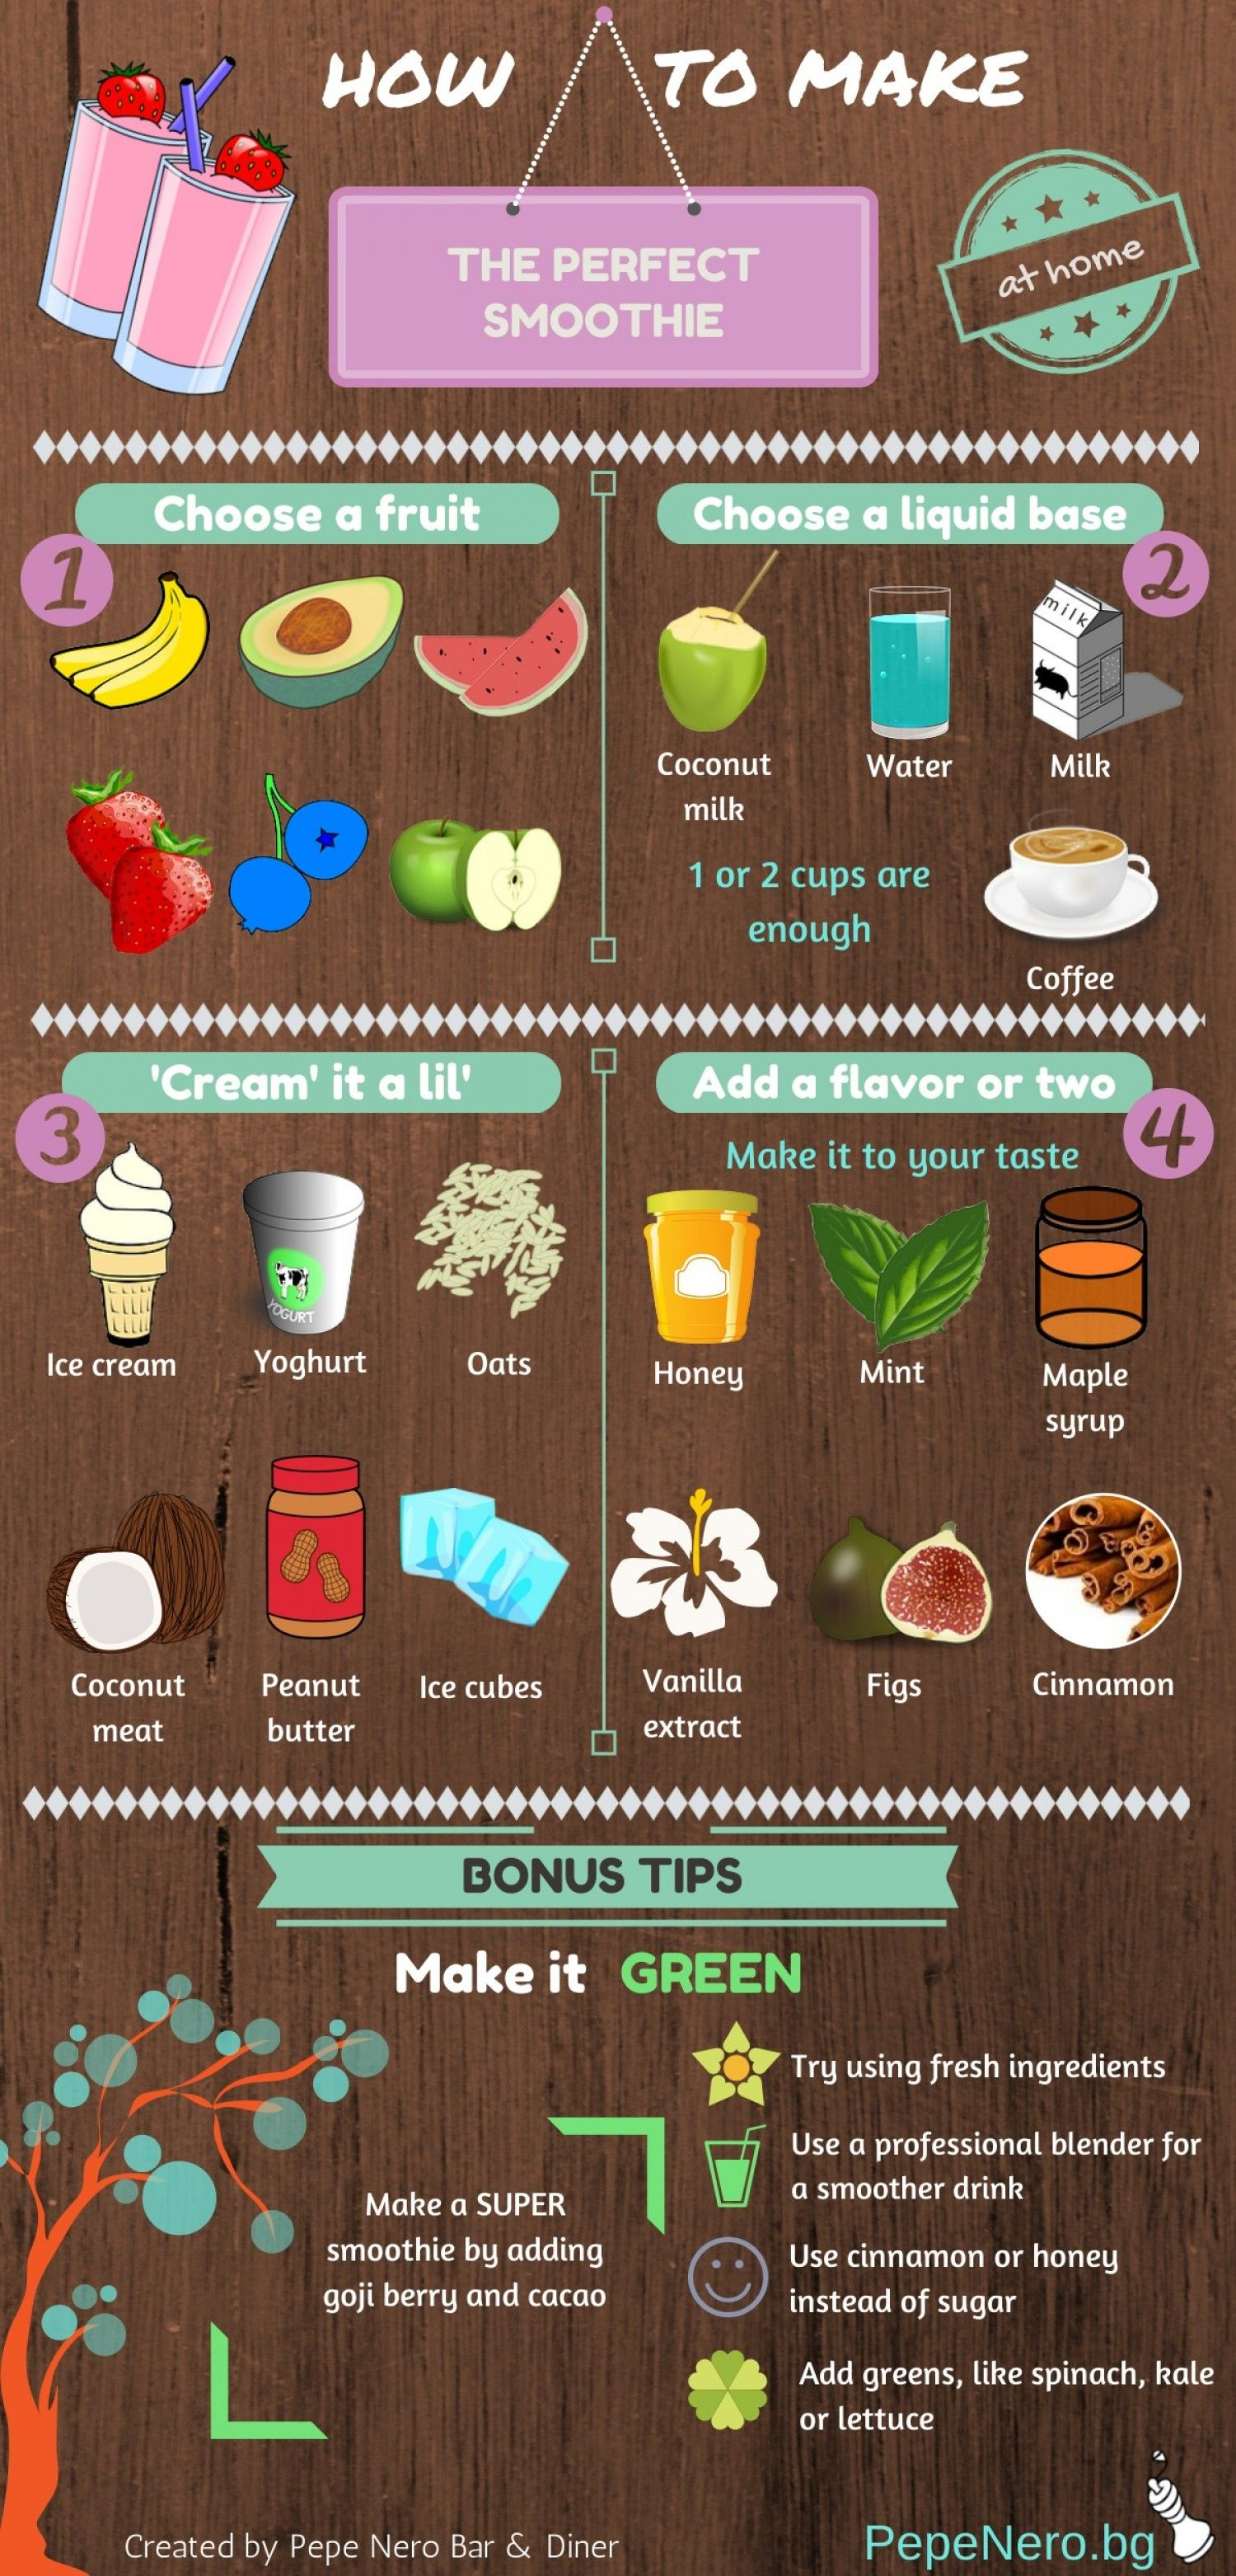 How To Make the Perfect Smoothie How To Make the Perfect Smoothie new pics